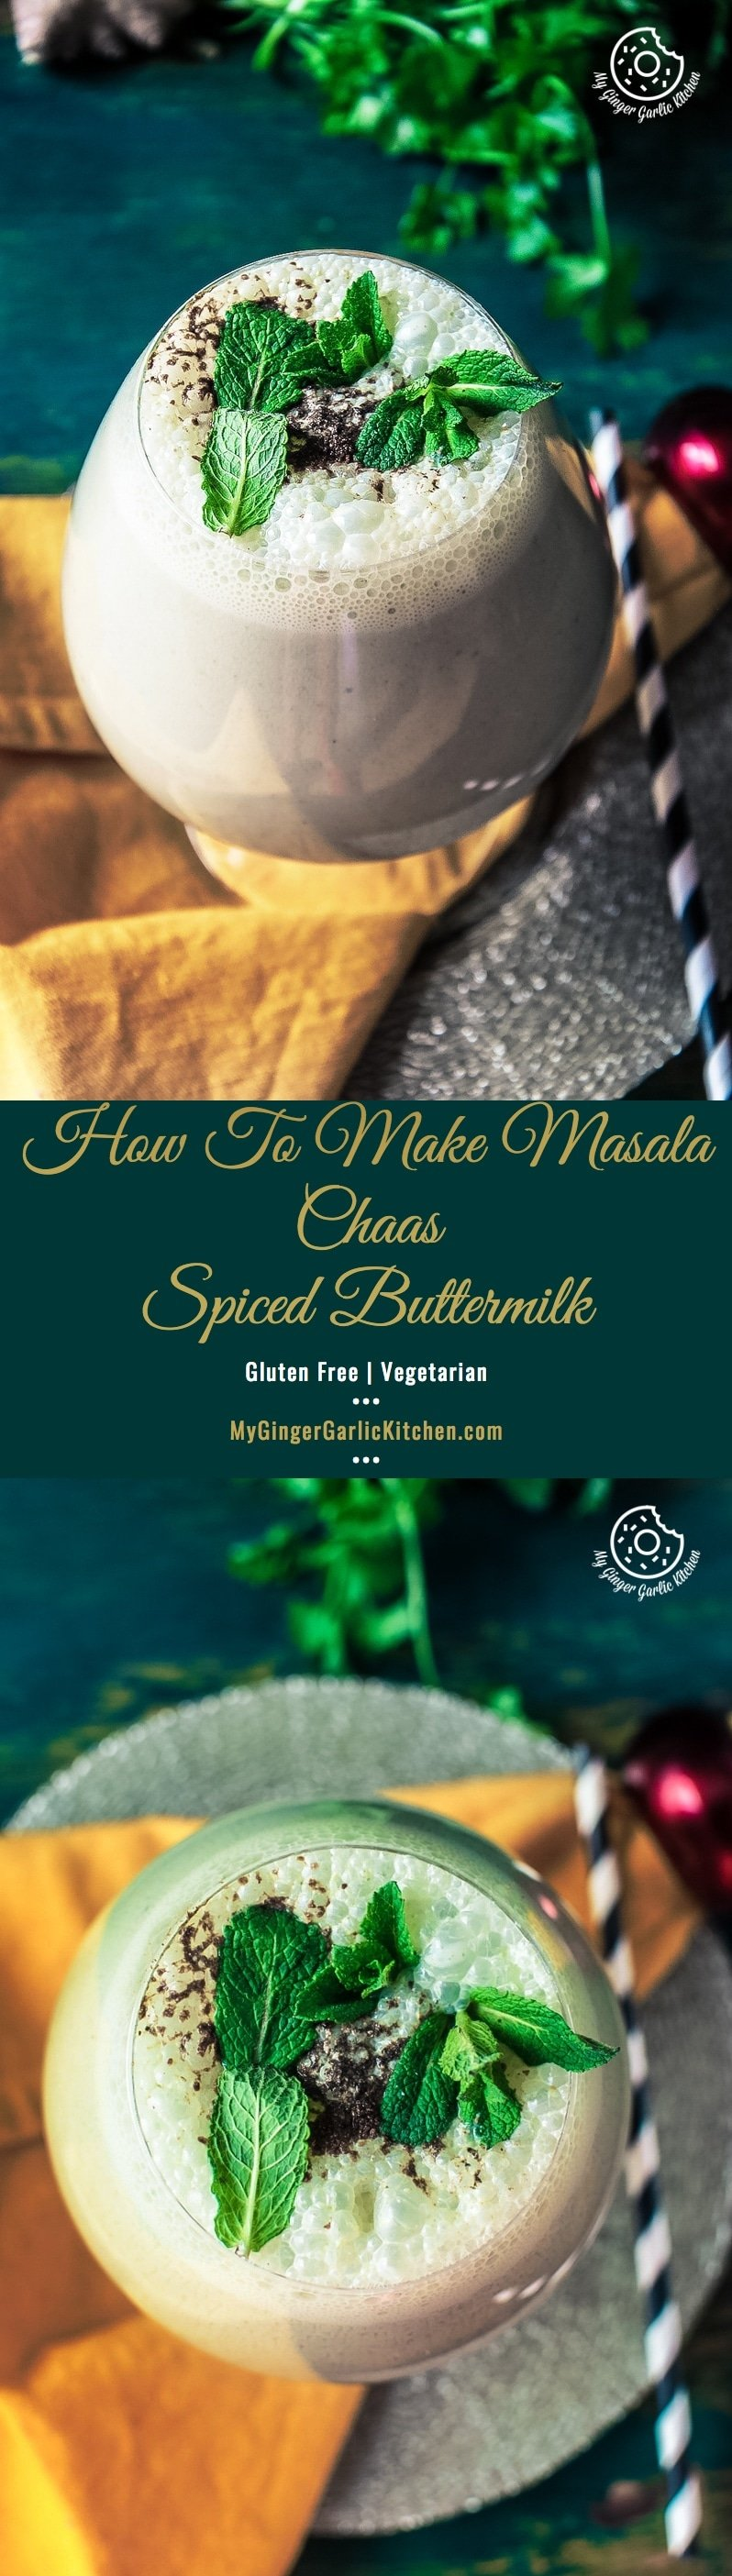 How To Make Masala Chaas | Spiced Buttermilk | mygingergarlickitchen.com/ @anupama_dreams